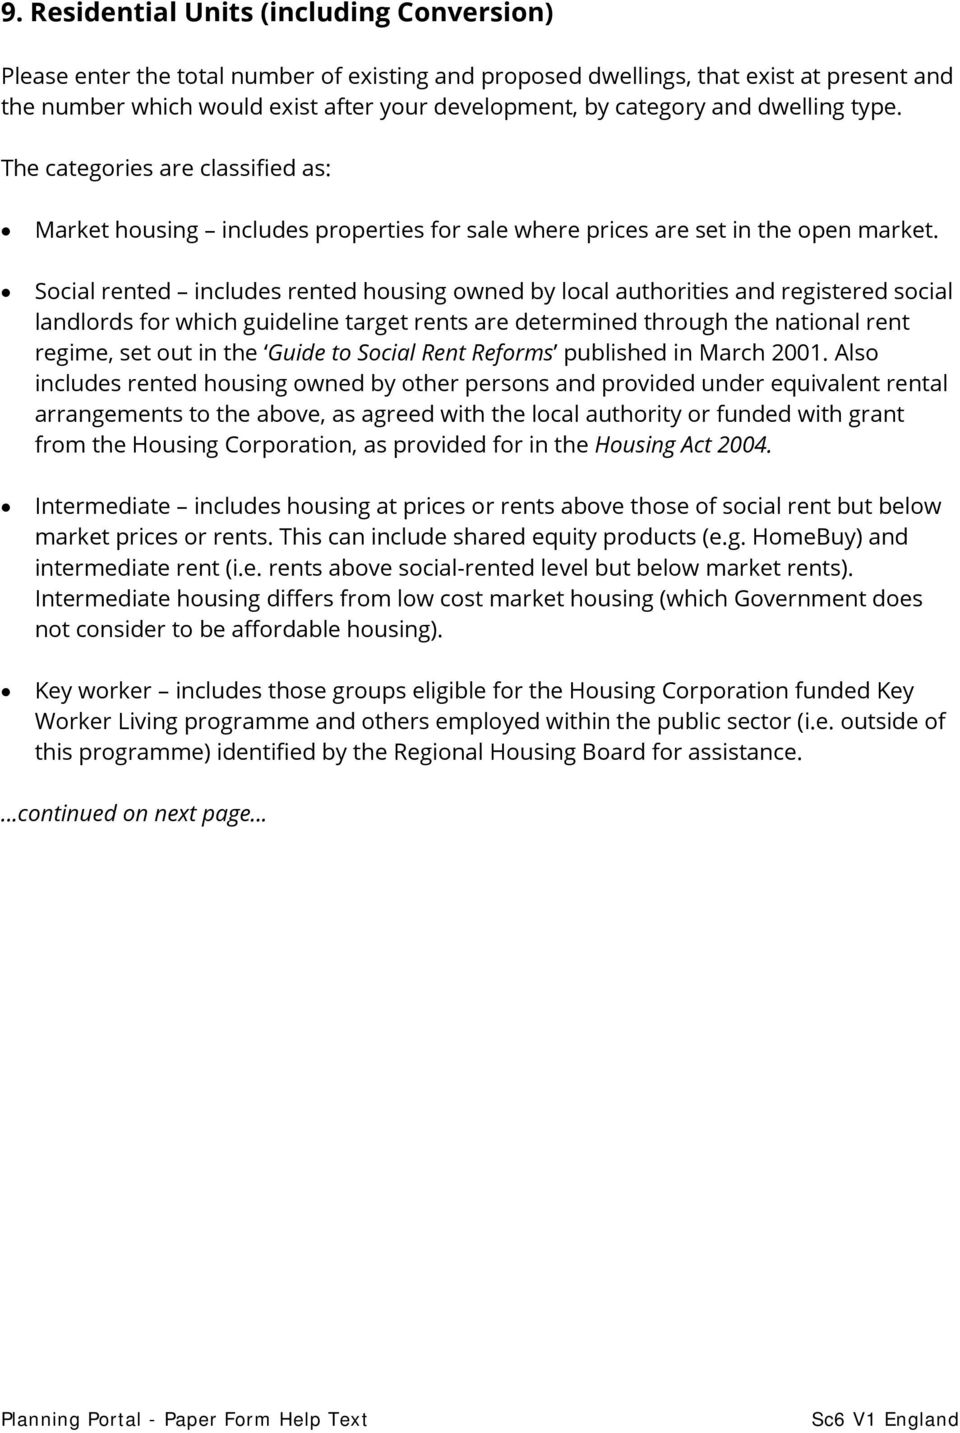 Social rented includes rented housing owned by local authorities and registered social landlords for which guideline target rents are determined through the national rent regime, set out in the Guide